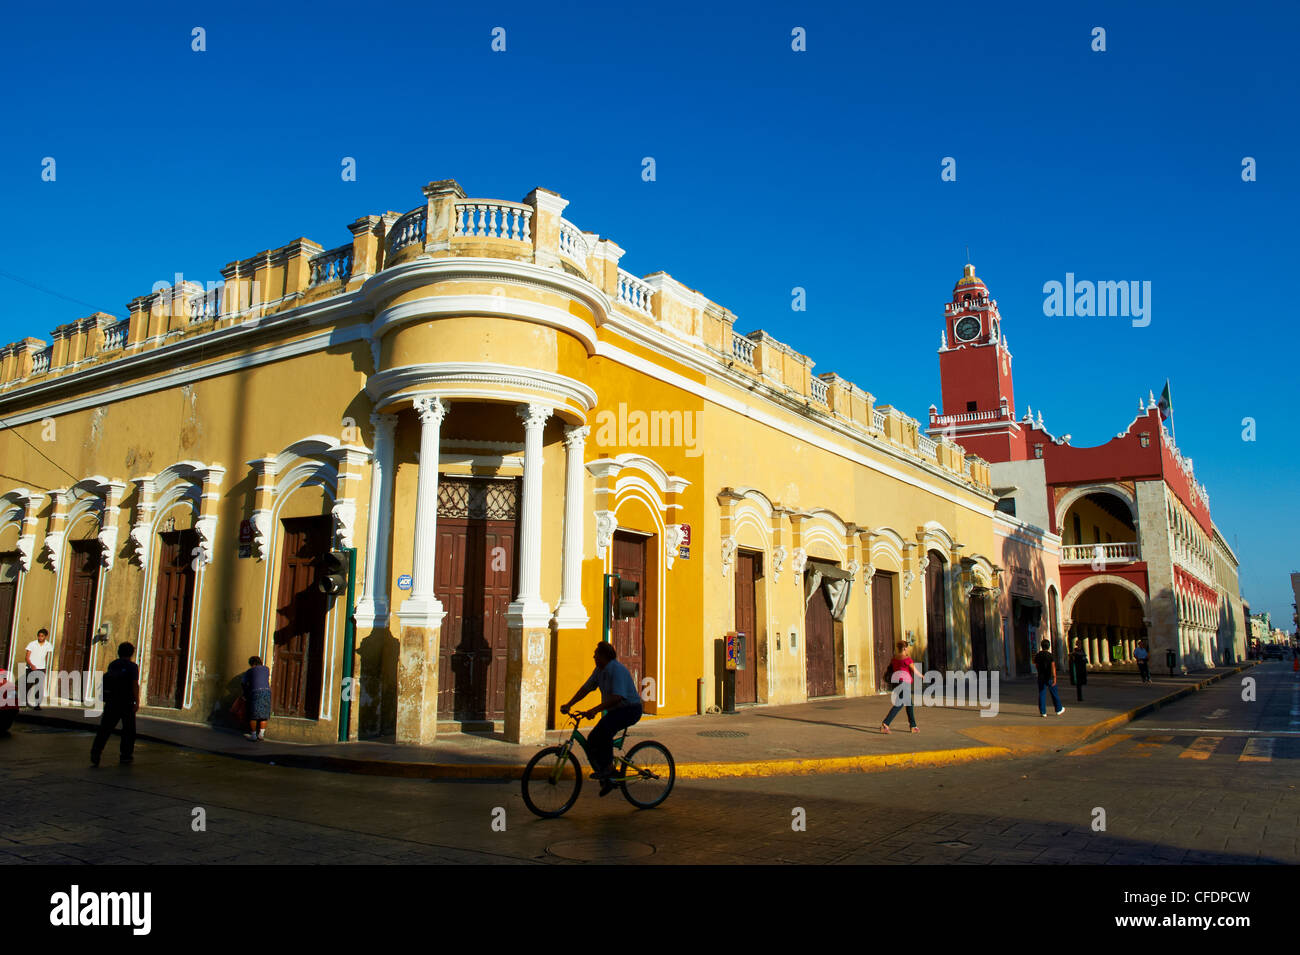 Independence Square, Merida, Yucatan State, Mexico, - Stock Image